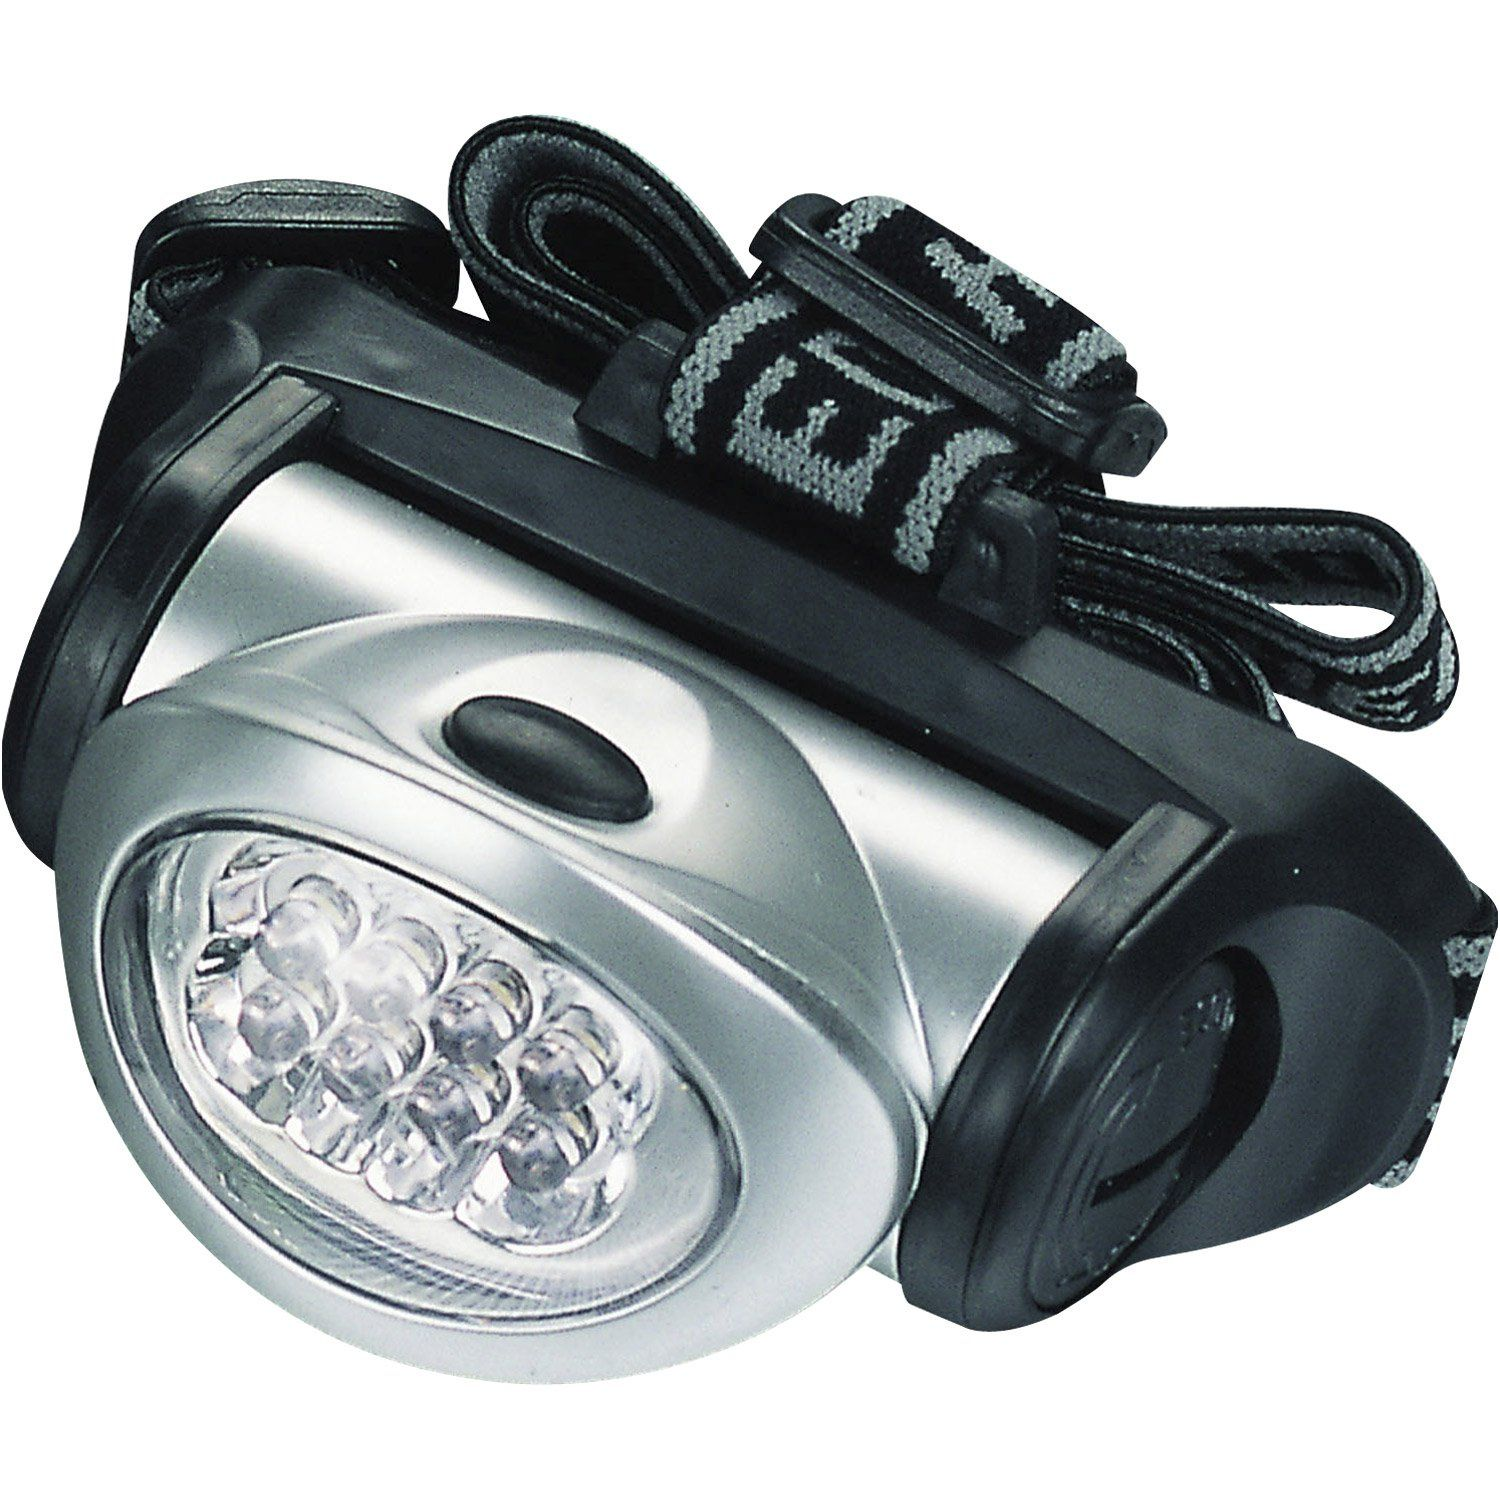 10 Divertir Lampe Led Pile Leroy Merlin Gallery